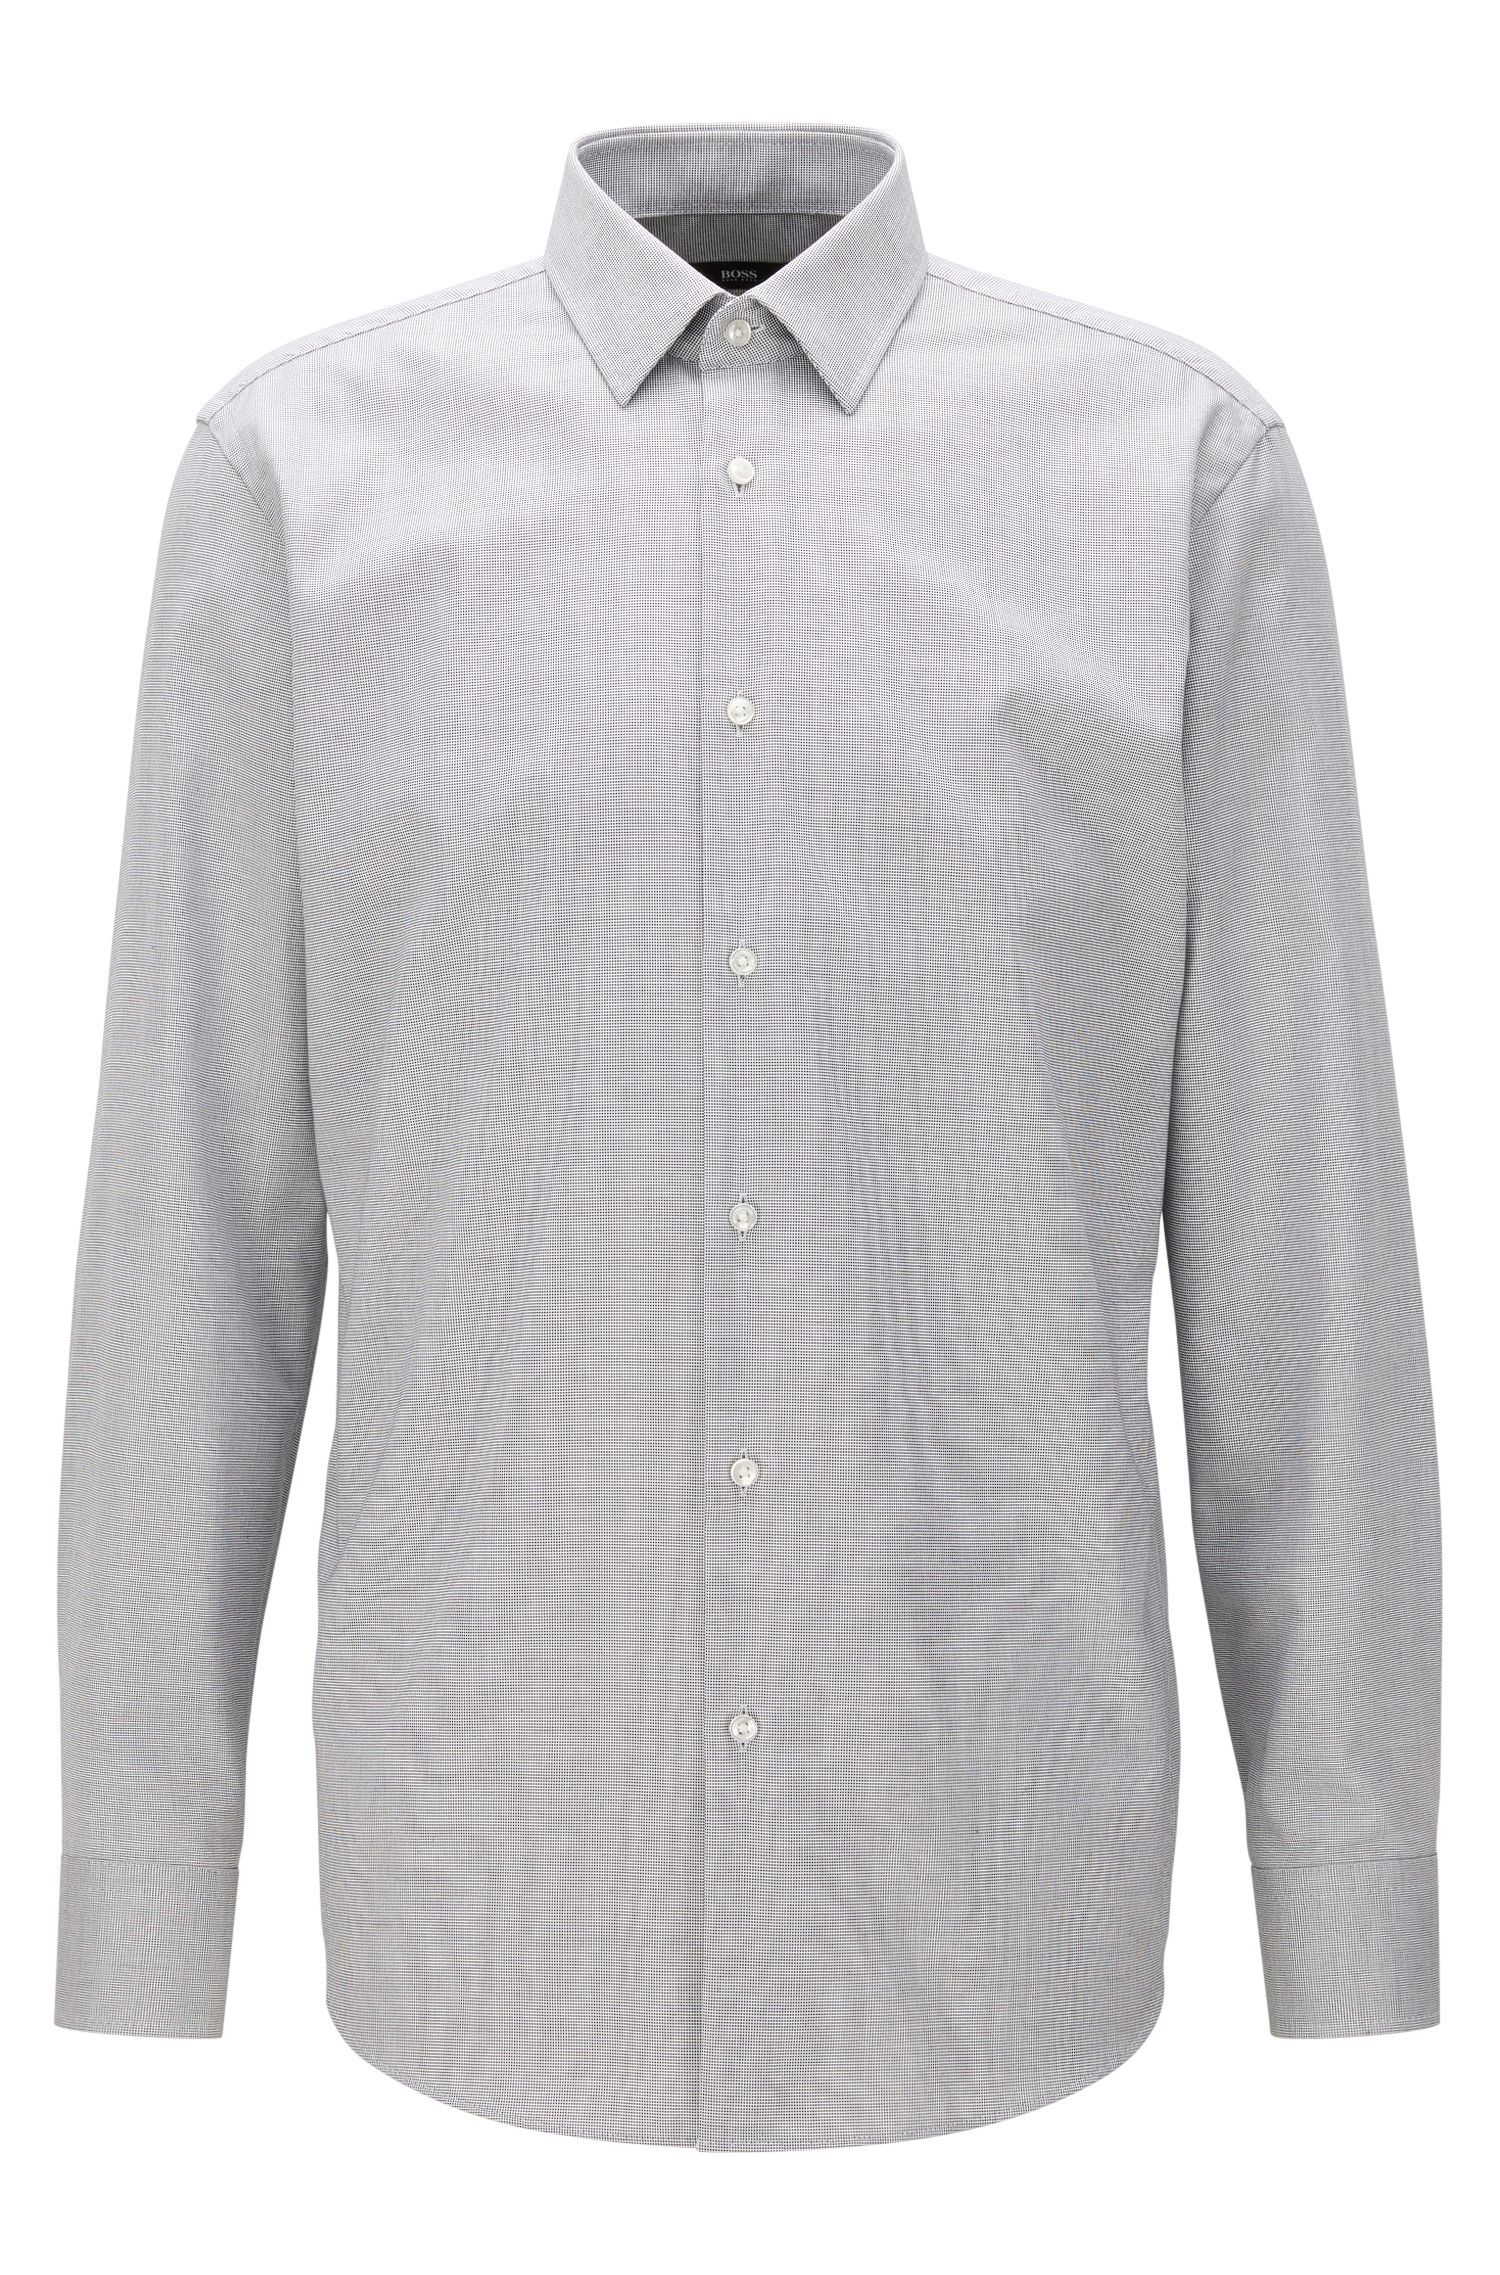 Regular-fit shirt in cotton poplin